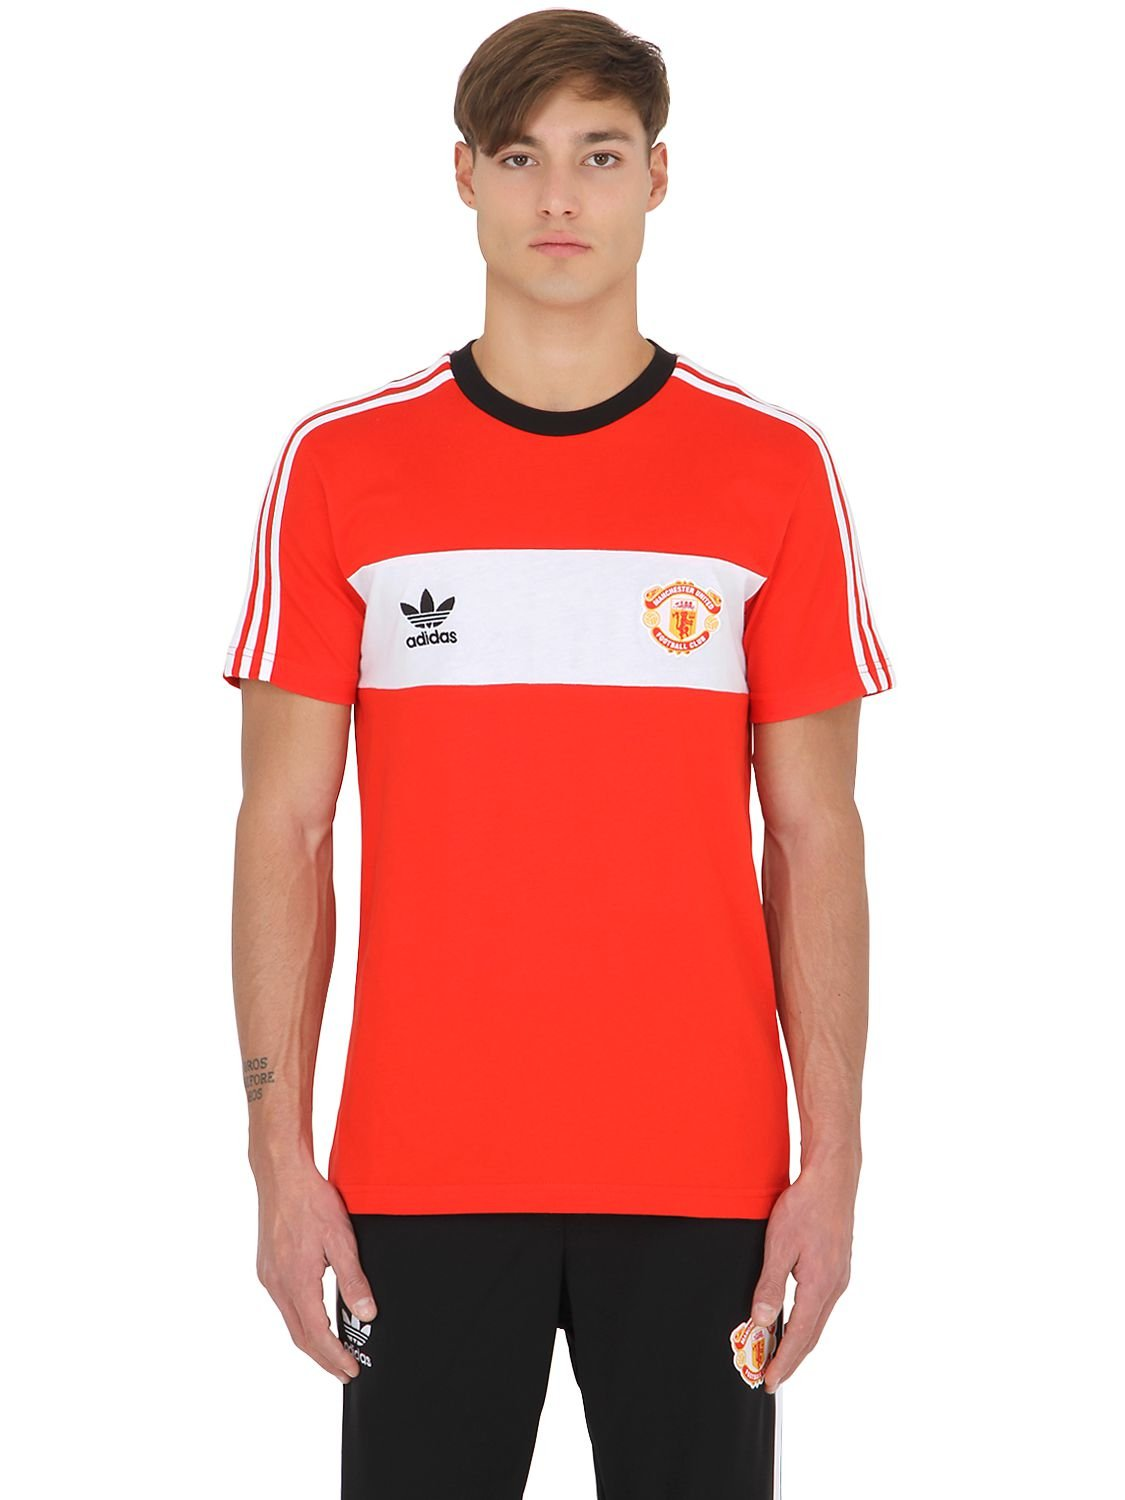 d107f22c2 adidas Originals Limit.ed Manchester United T-shirt in Red for Men ...